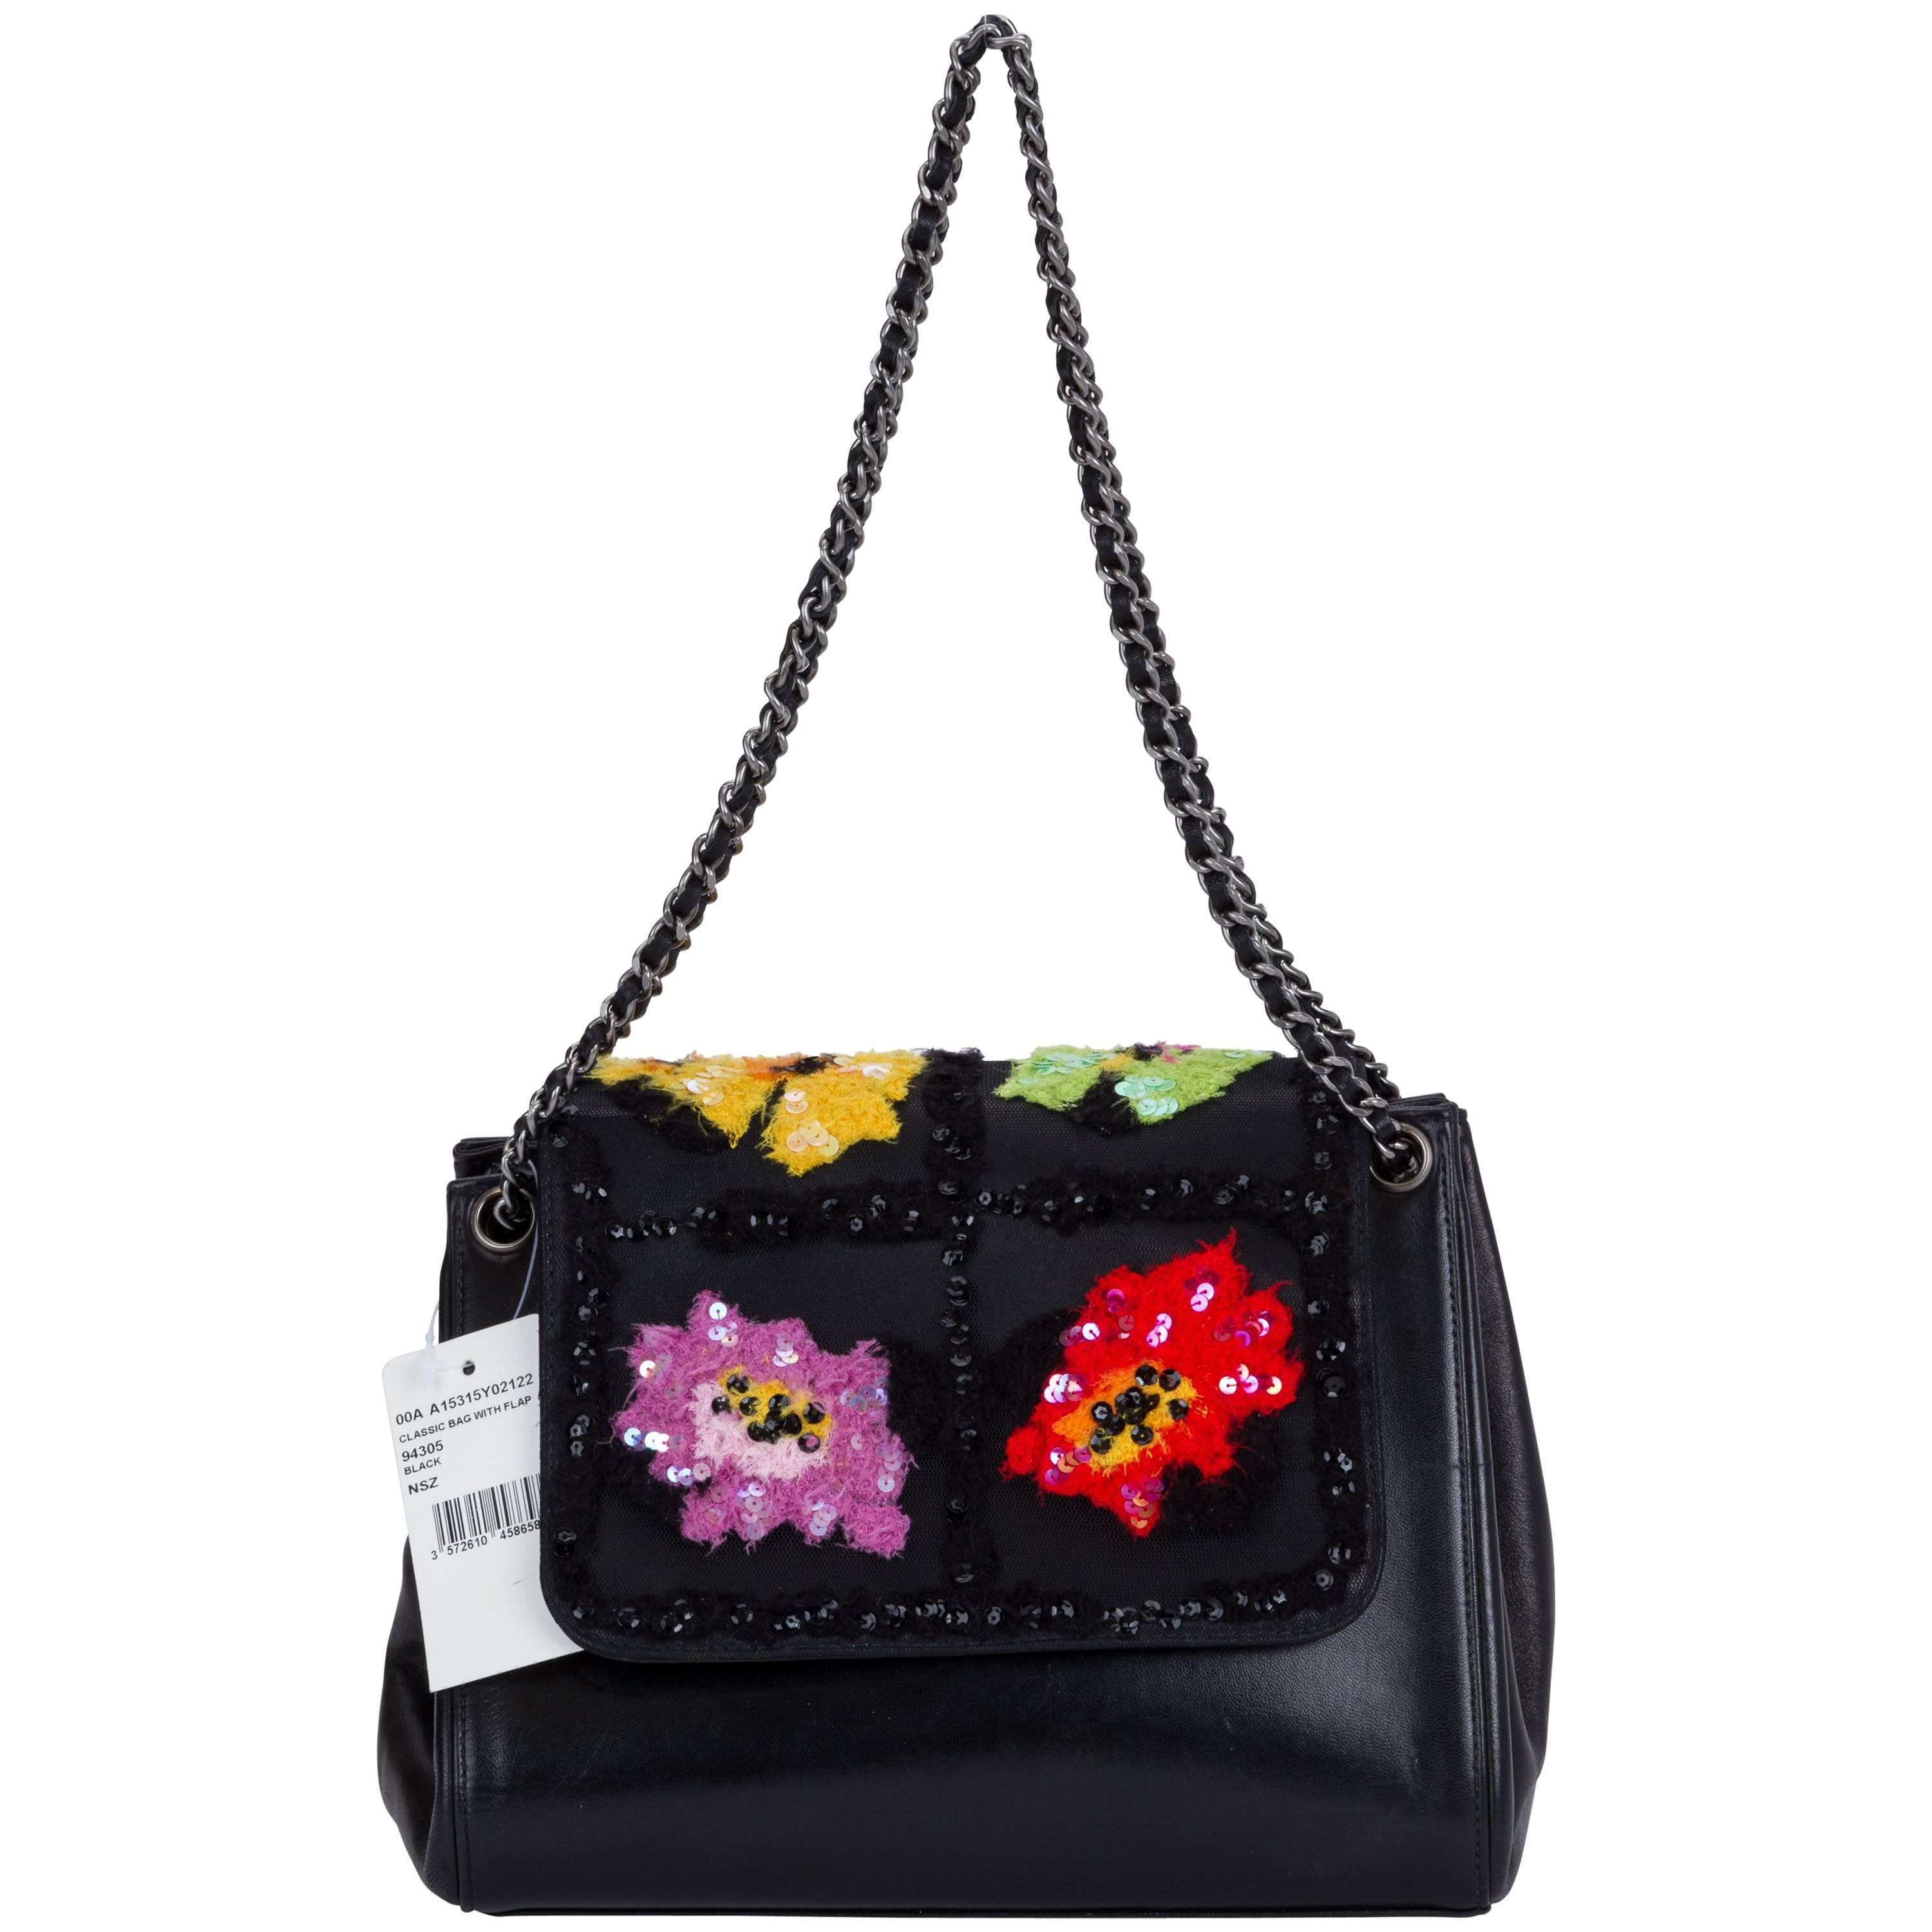 865b8a971edc Chanel Black Embroidered Evening Bag For Sale at 1stdibs